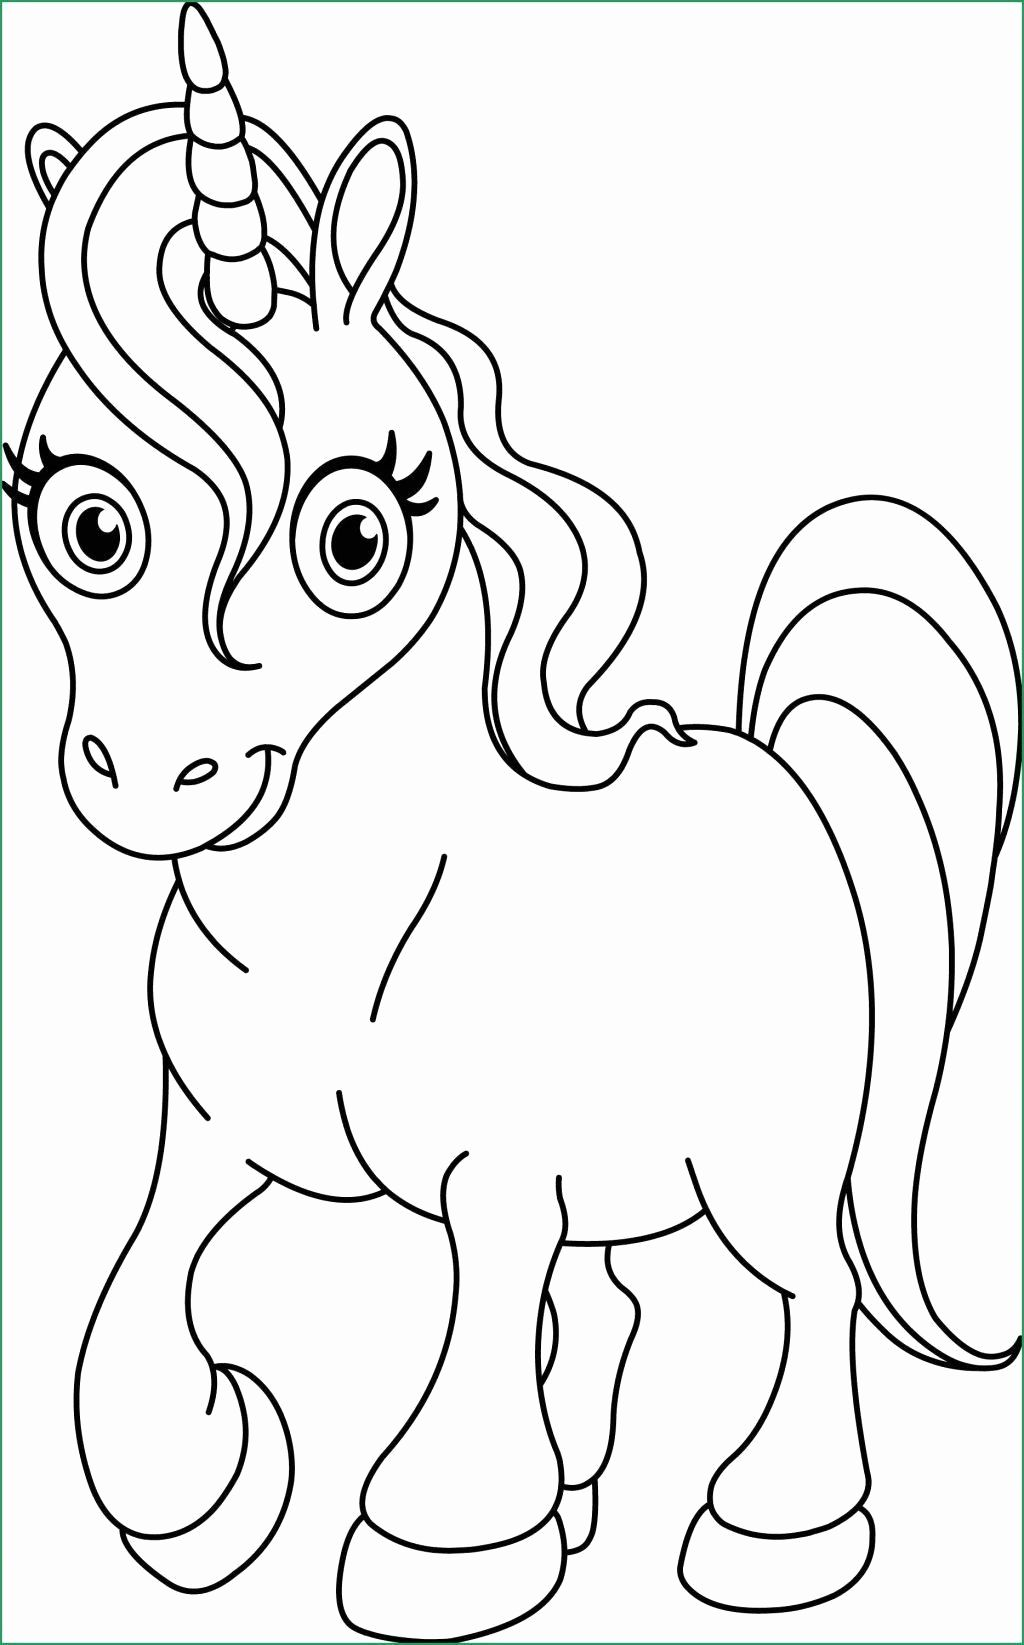 Horse Coloring Pages to Color Online in 2020   Horse ...